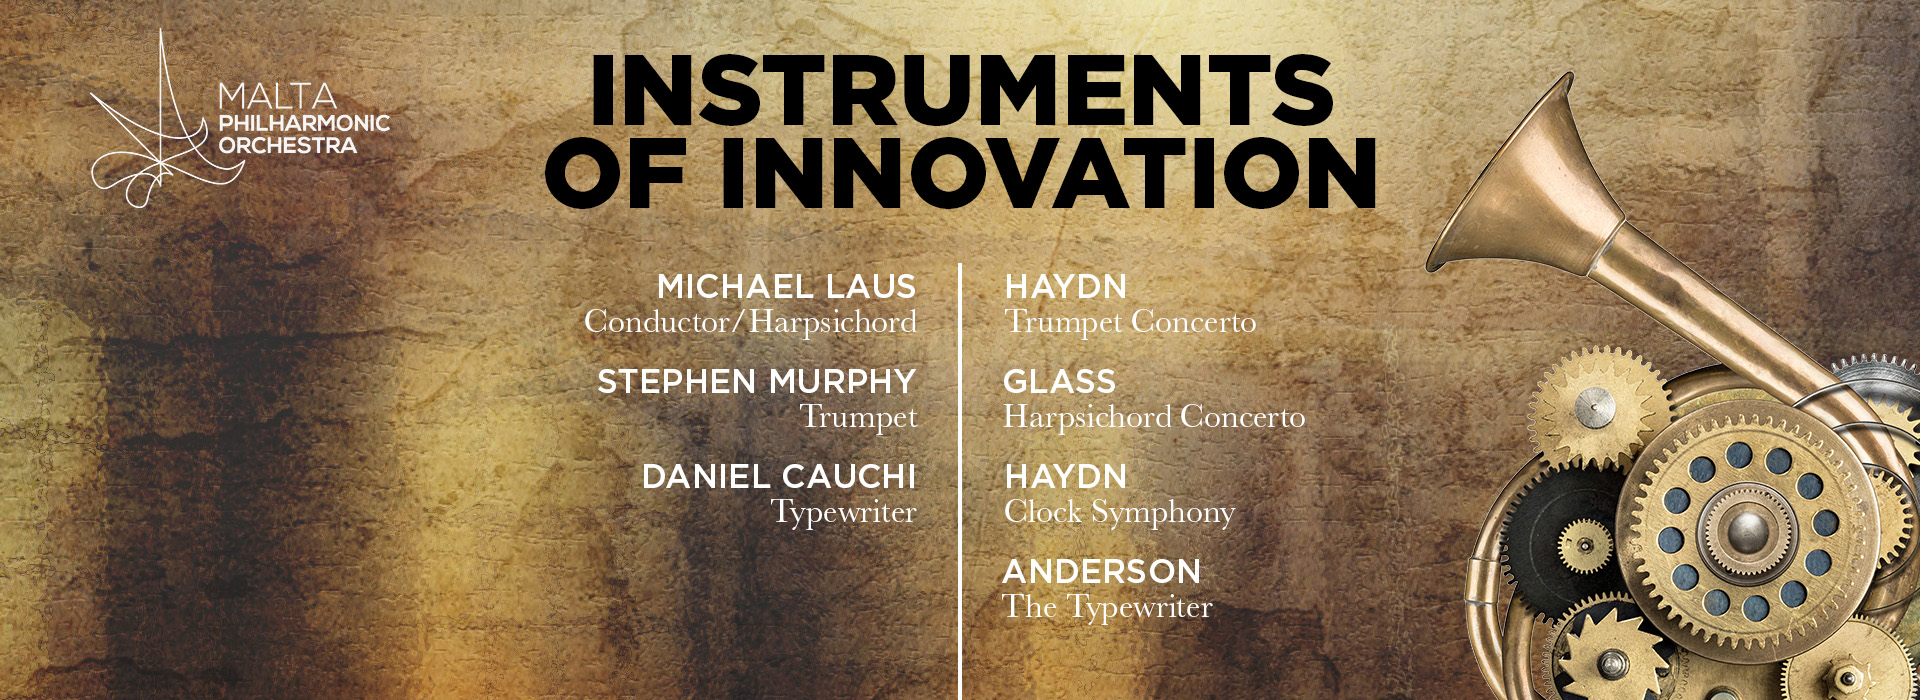 Instruments of Innovation